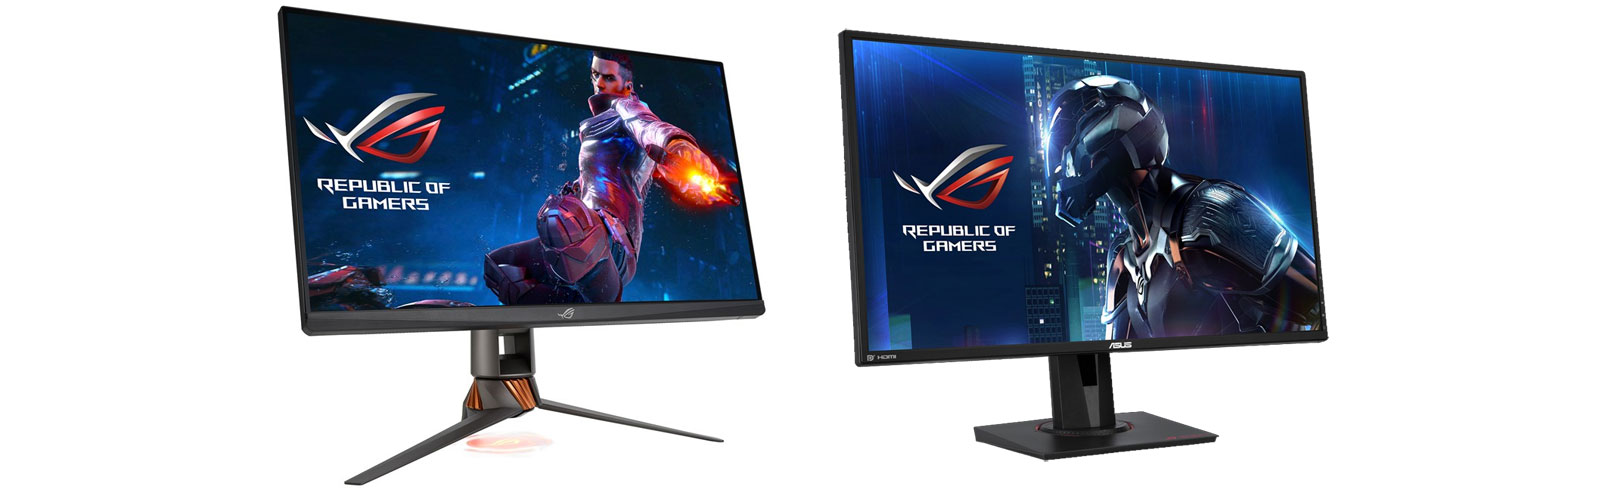 Asus takes the wraps off two WQHD ROG Swift gaming monitors